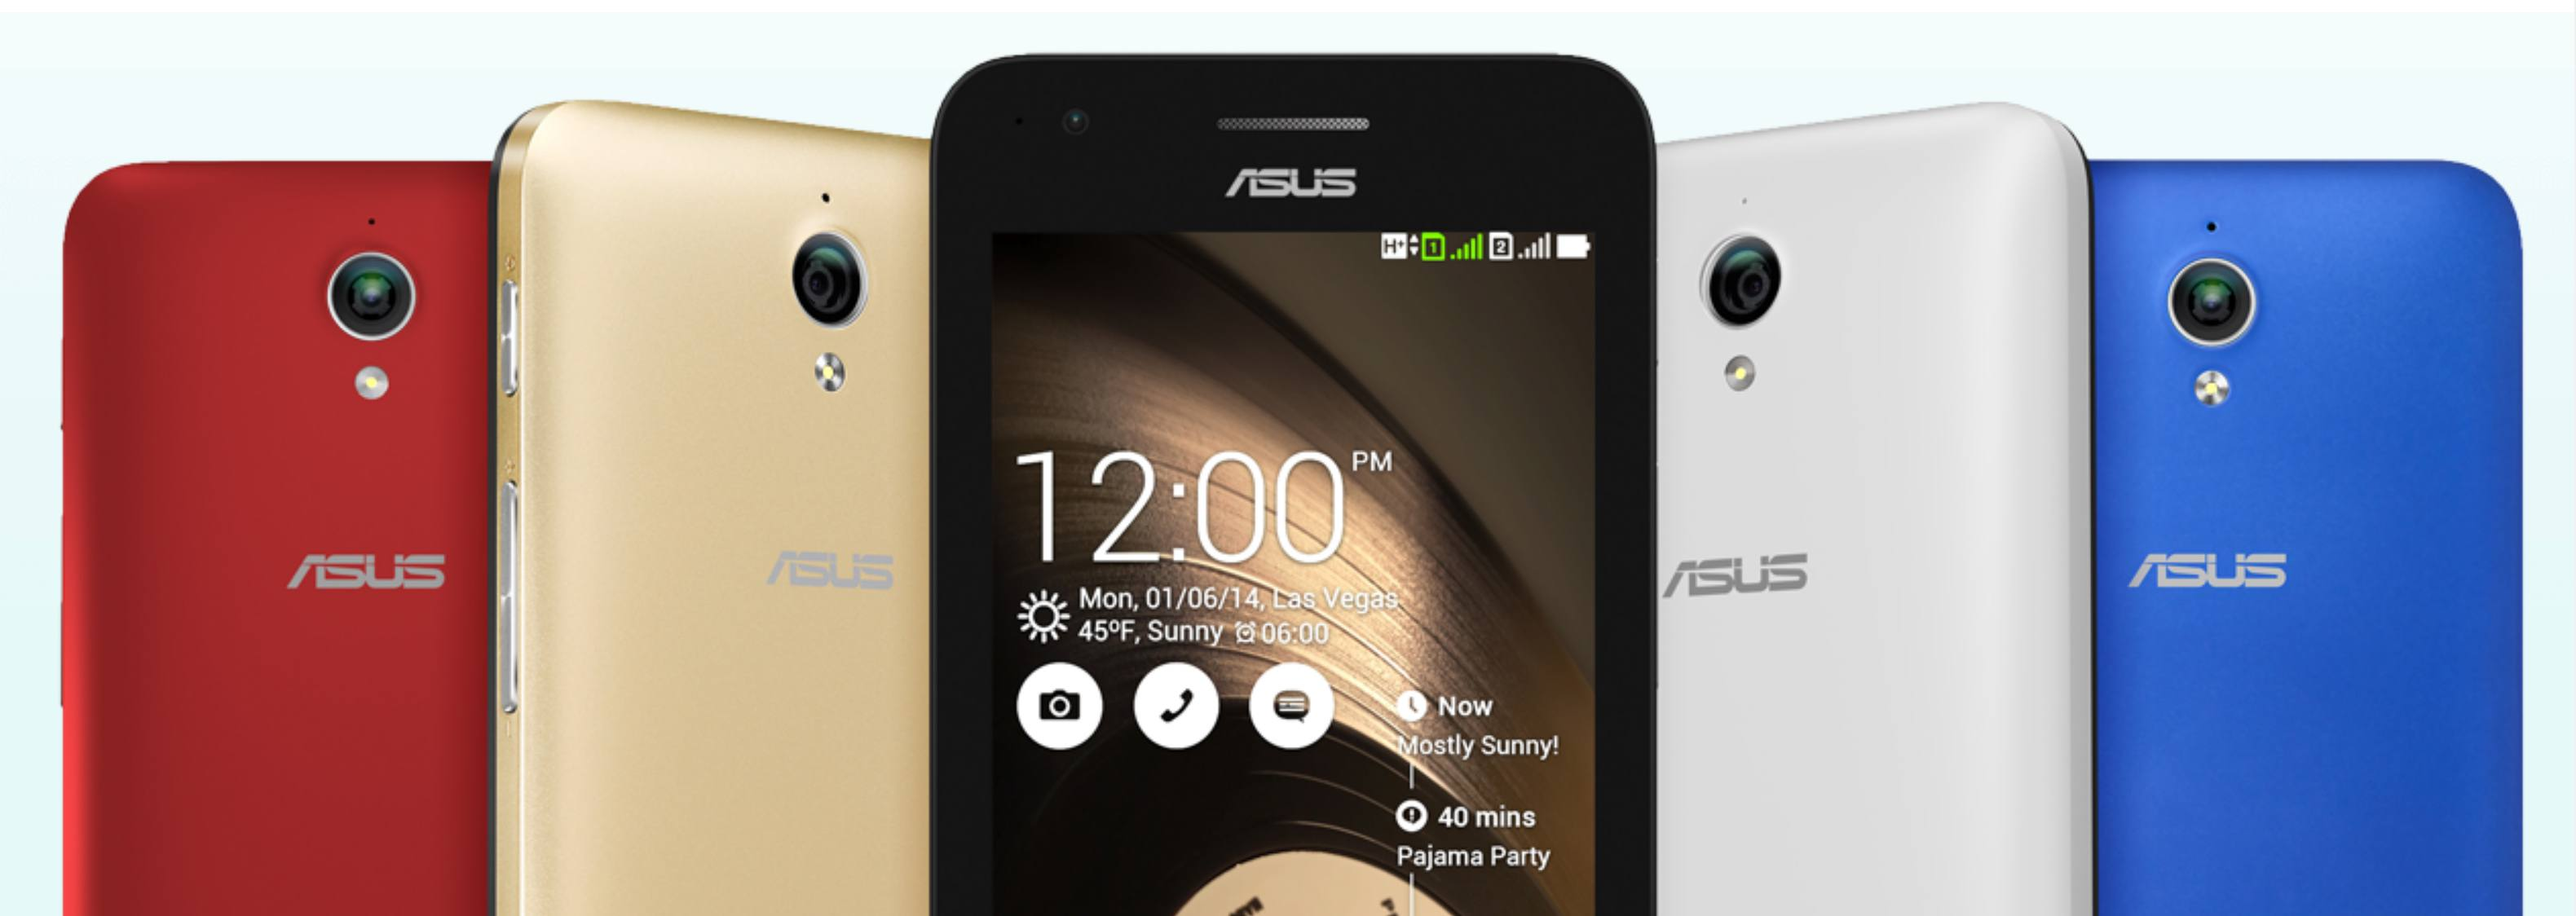 Asus ZenFone C in red, gold, white, and blue, front and back views